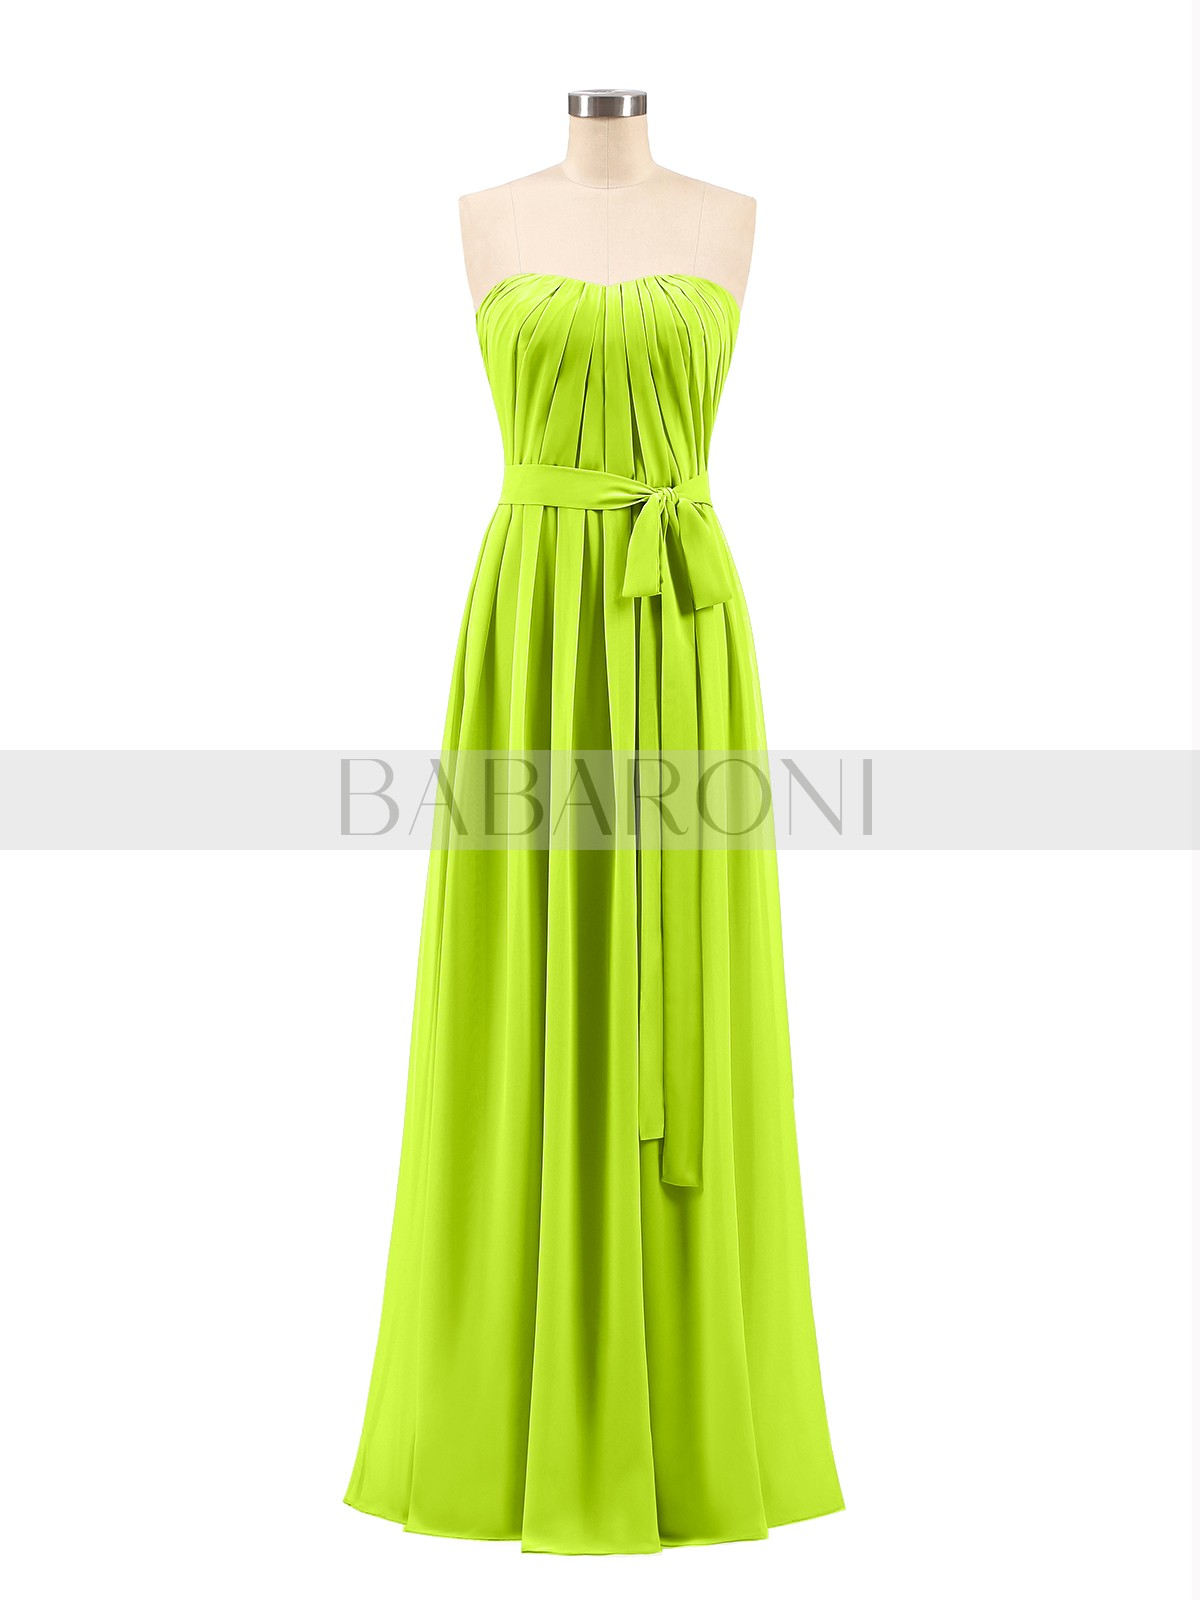 98832c8060d Lime Green Valentina Chiffon Strapless Bridesmaid Gown with Sash ...